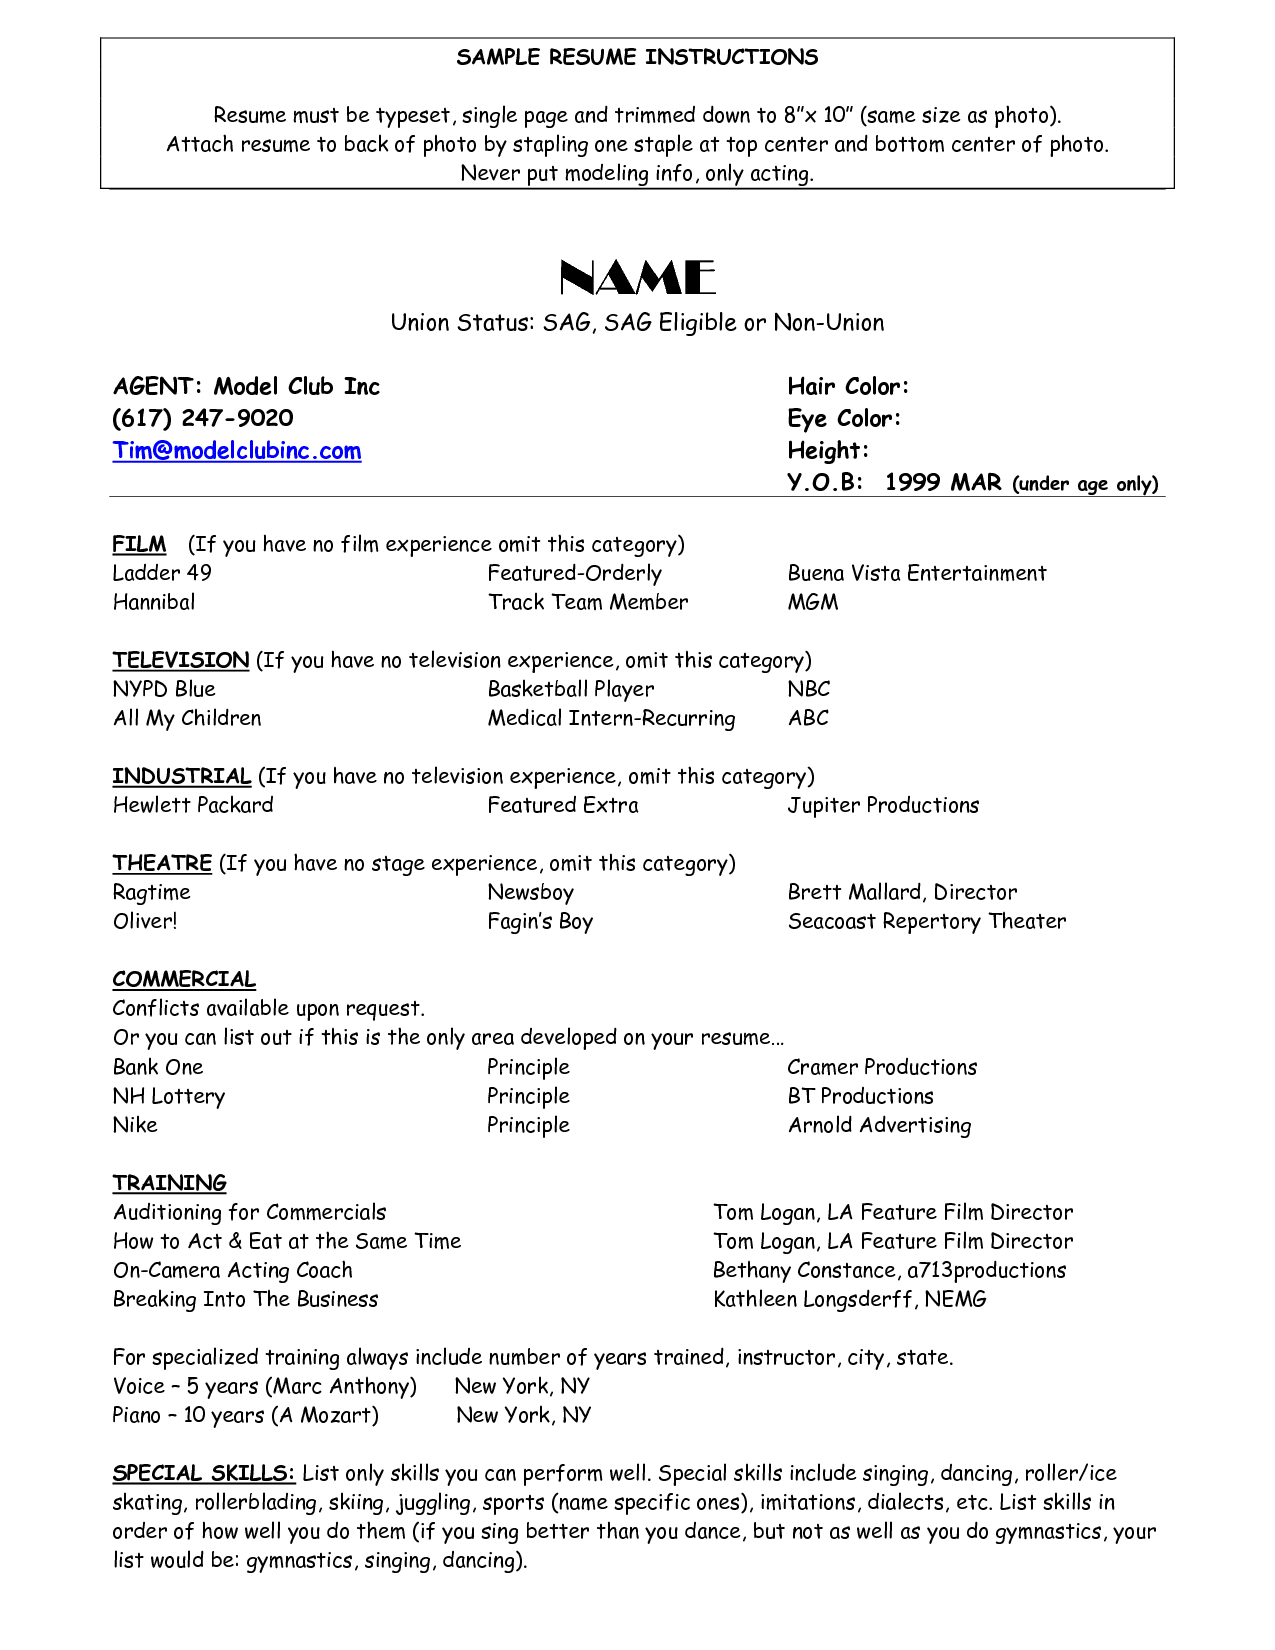 Acting Resume Beginner Magnificent Resume For Child Actor  Scope Of Work Template  Acting Resumes .